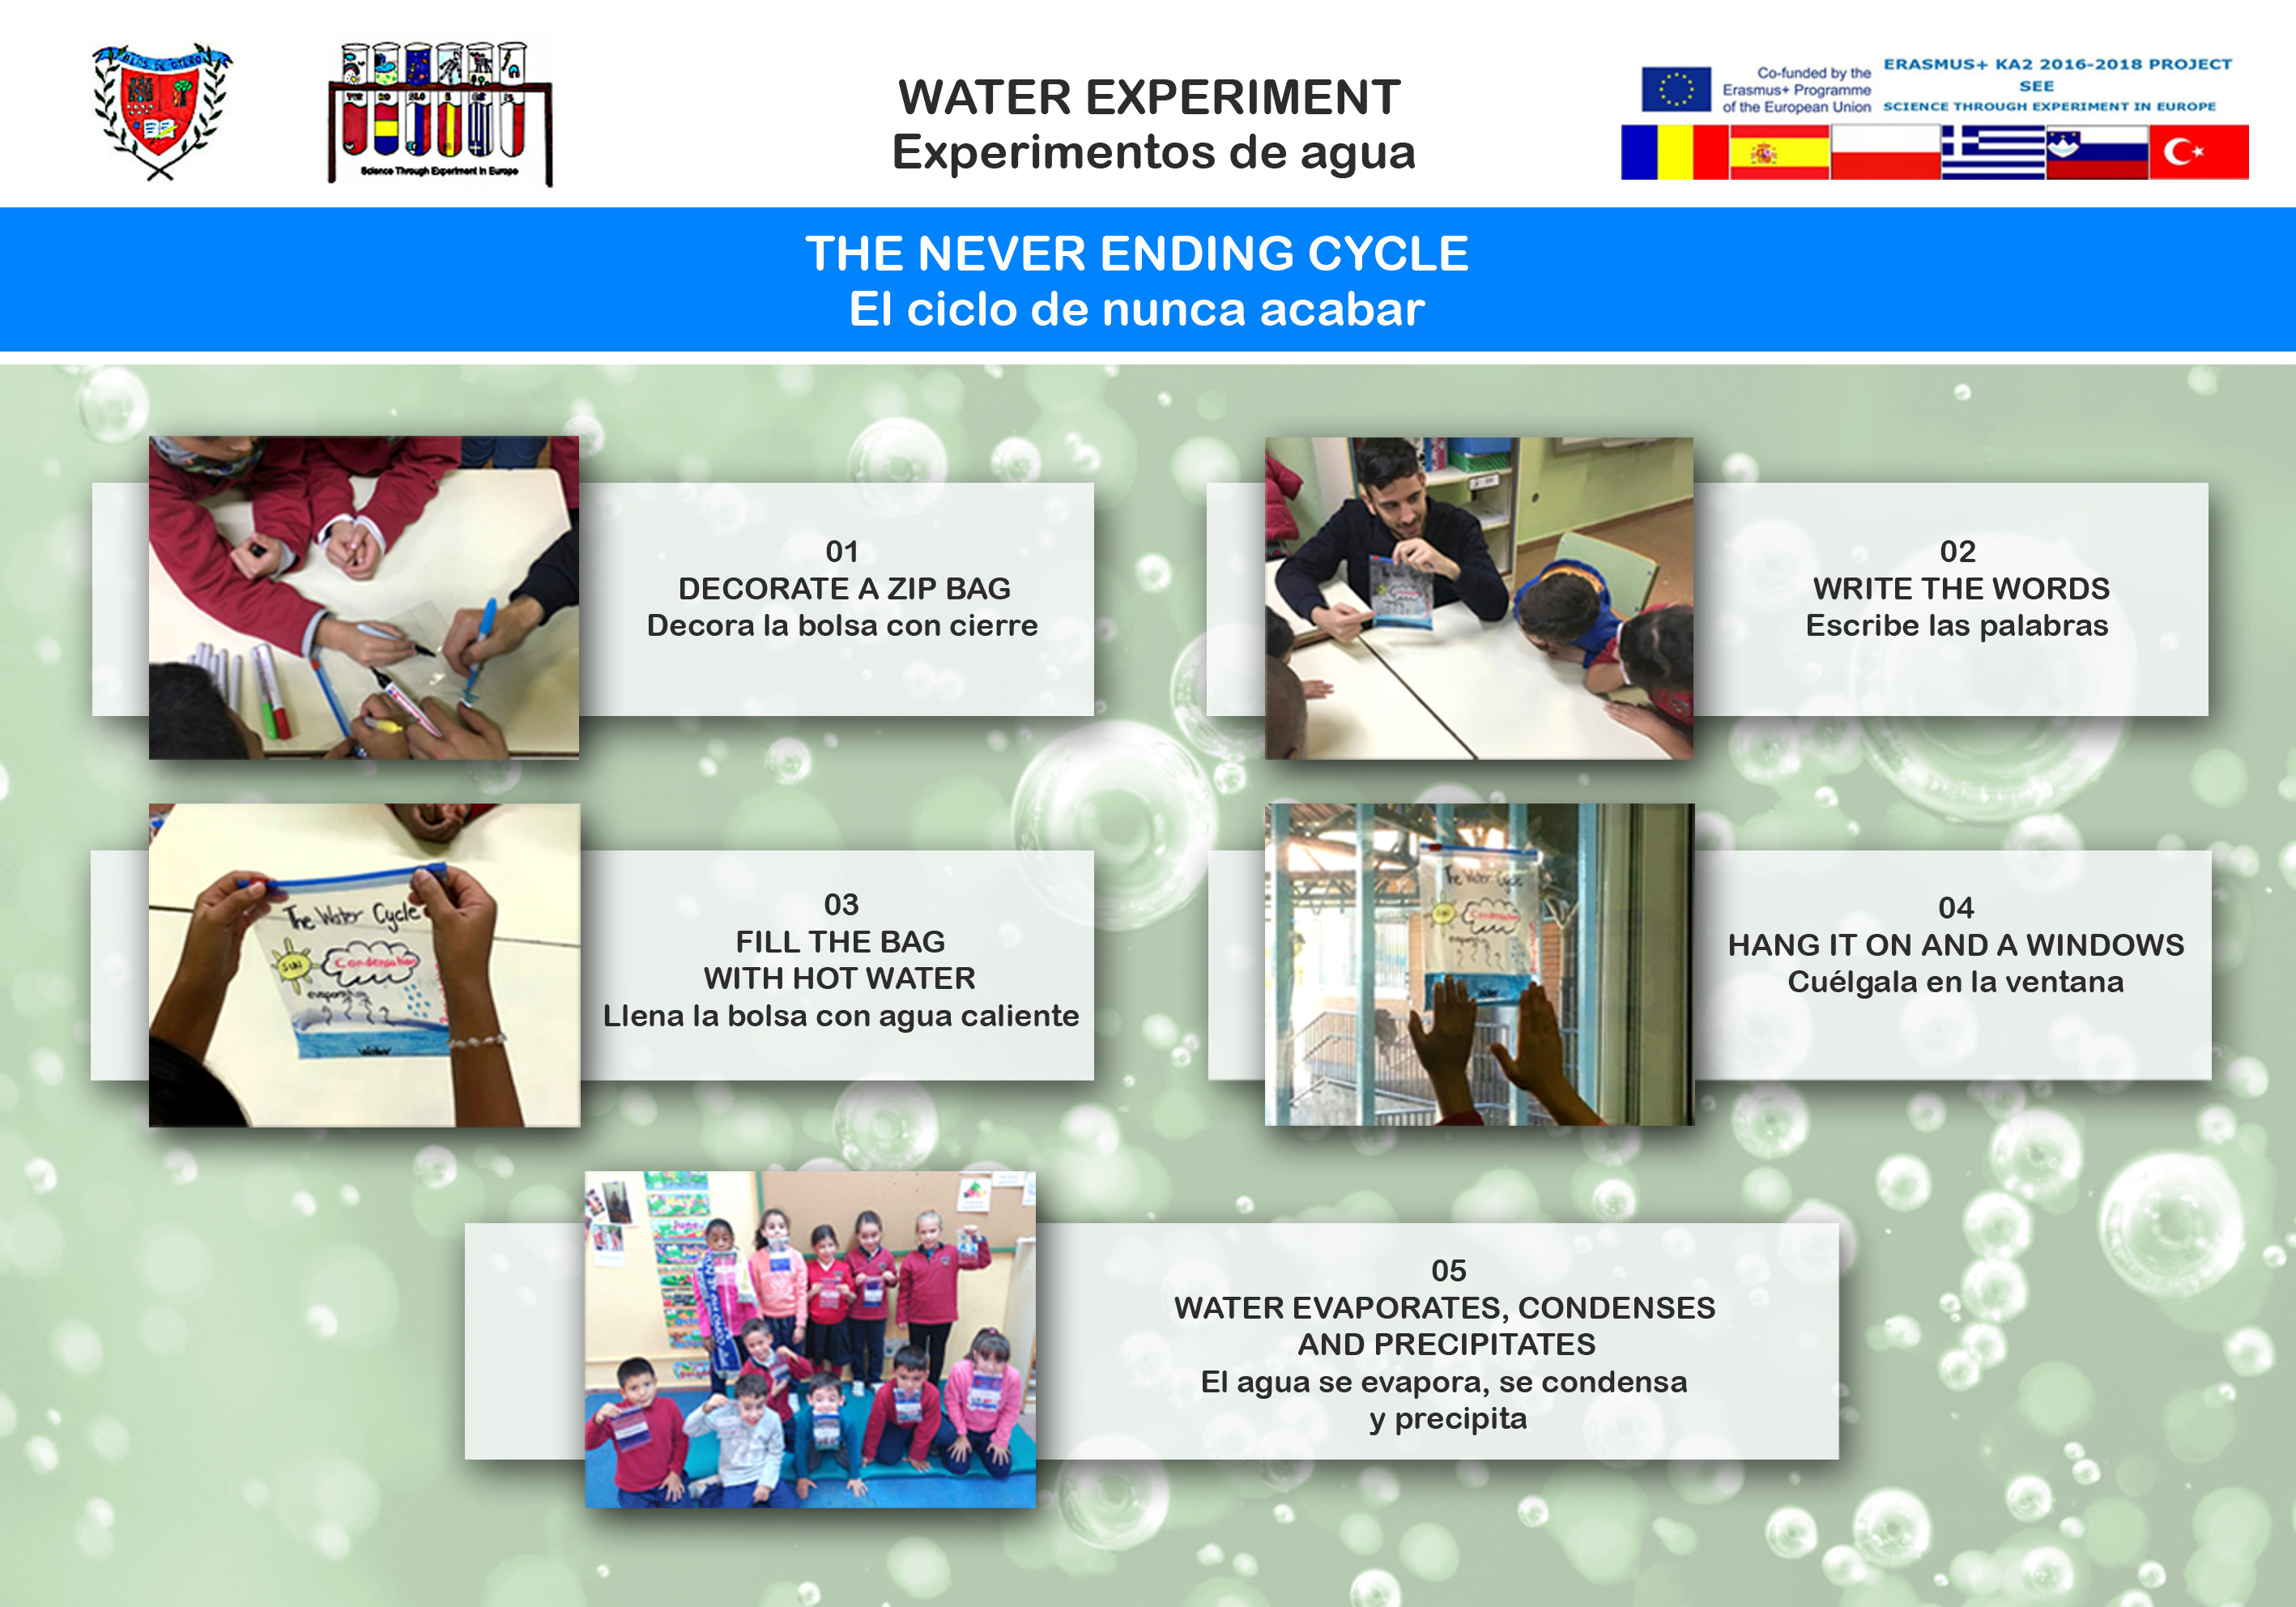 Water experiment 03 The never ending cycle